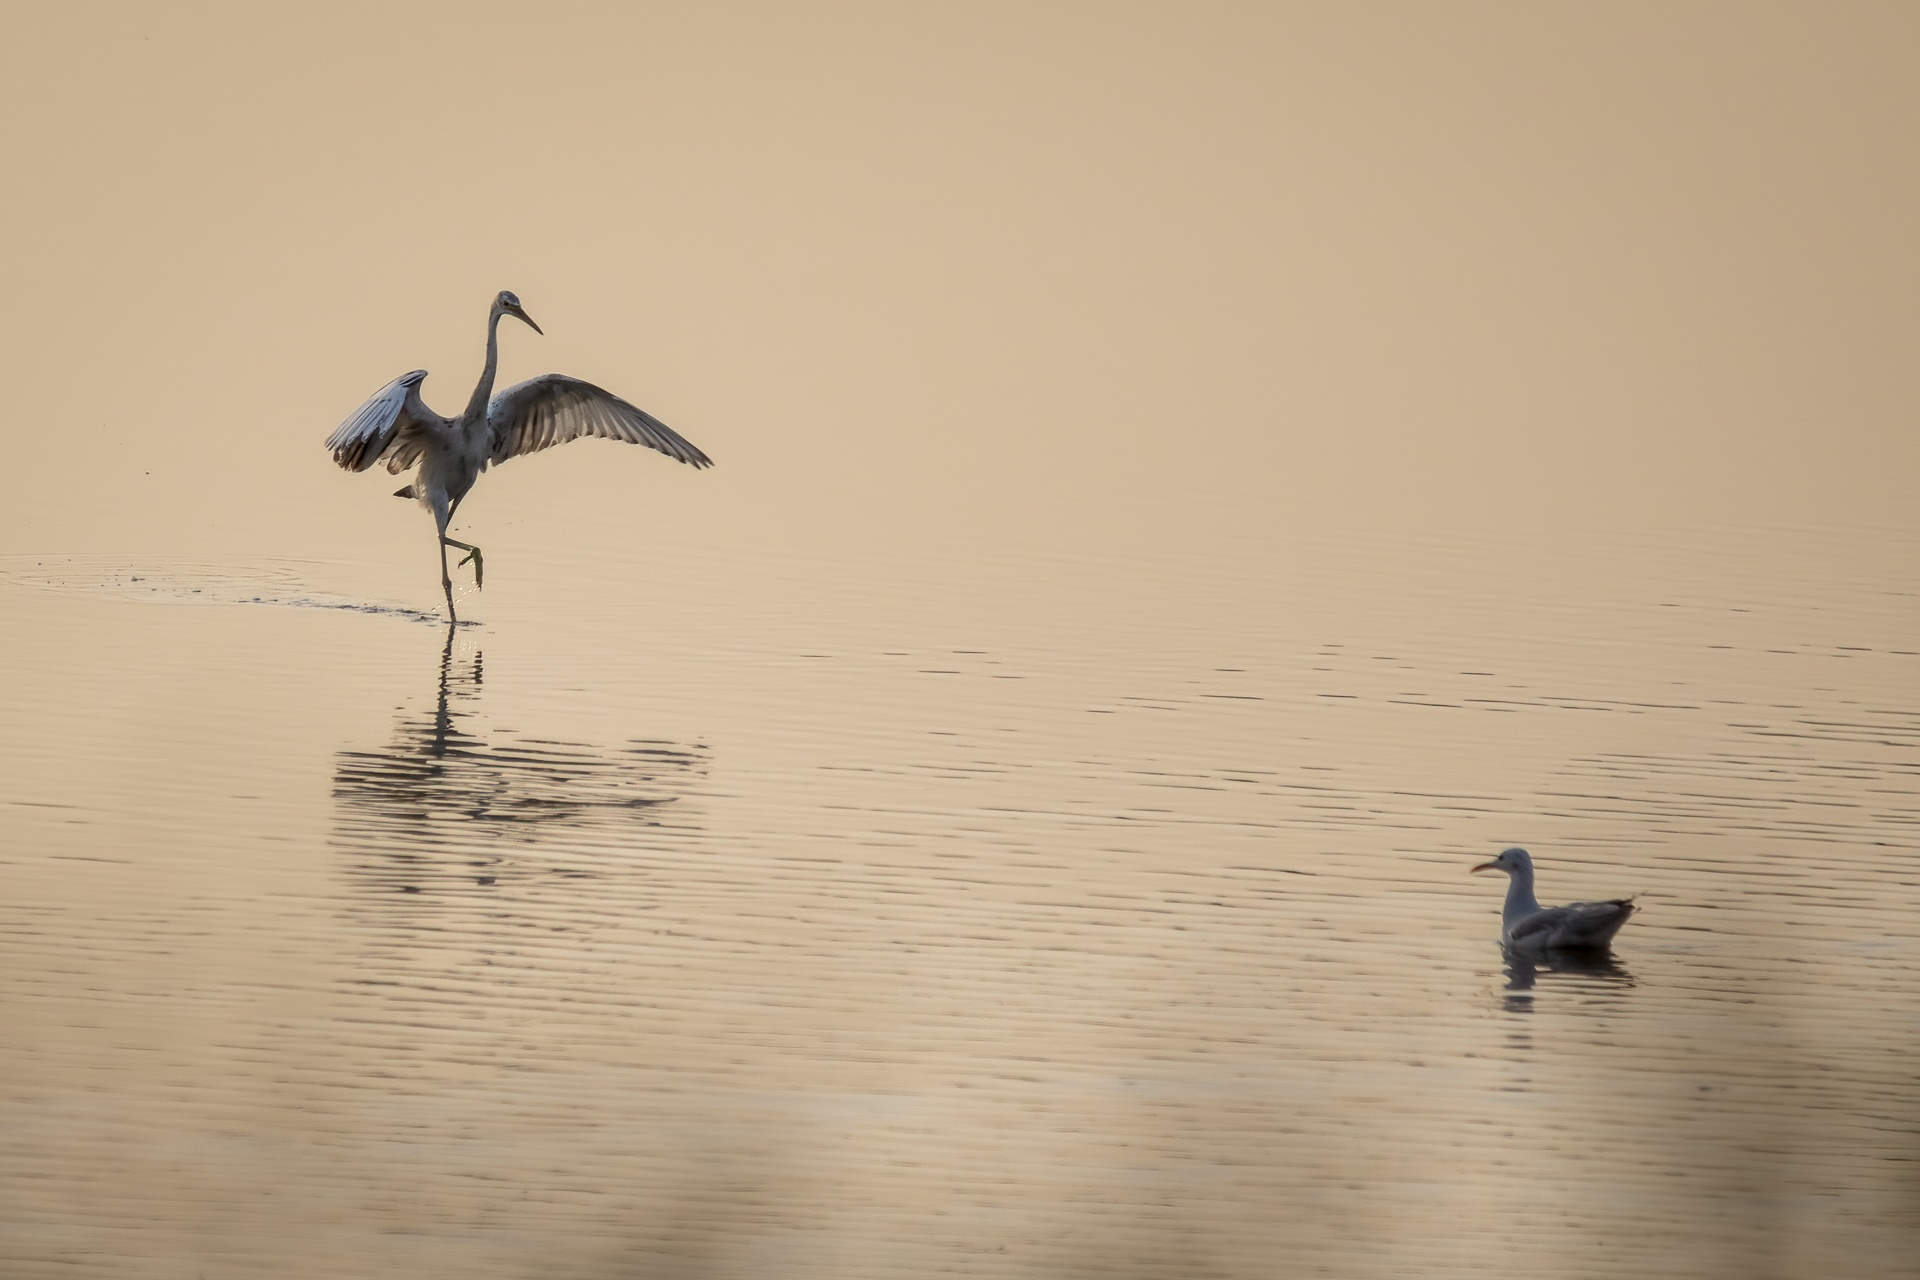 Egret stretching its wings as the sun sets